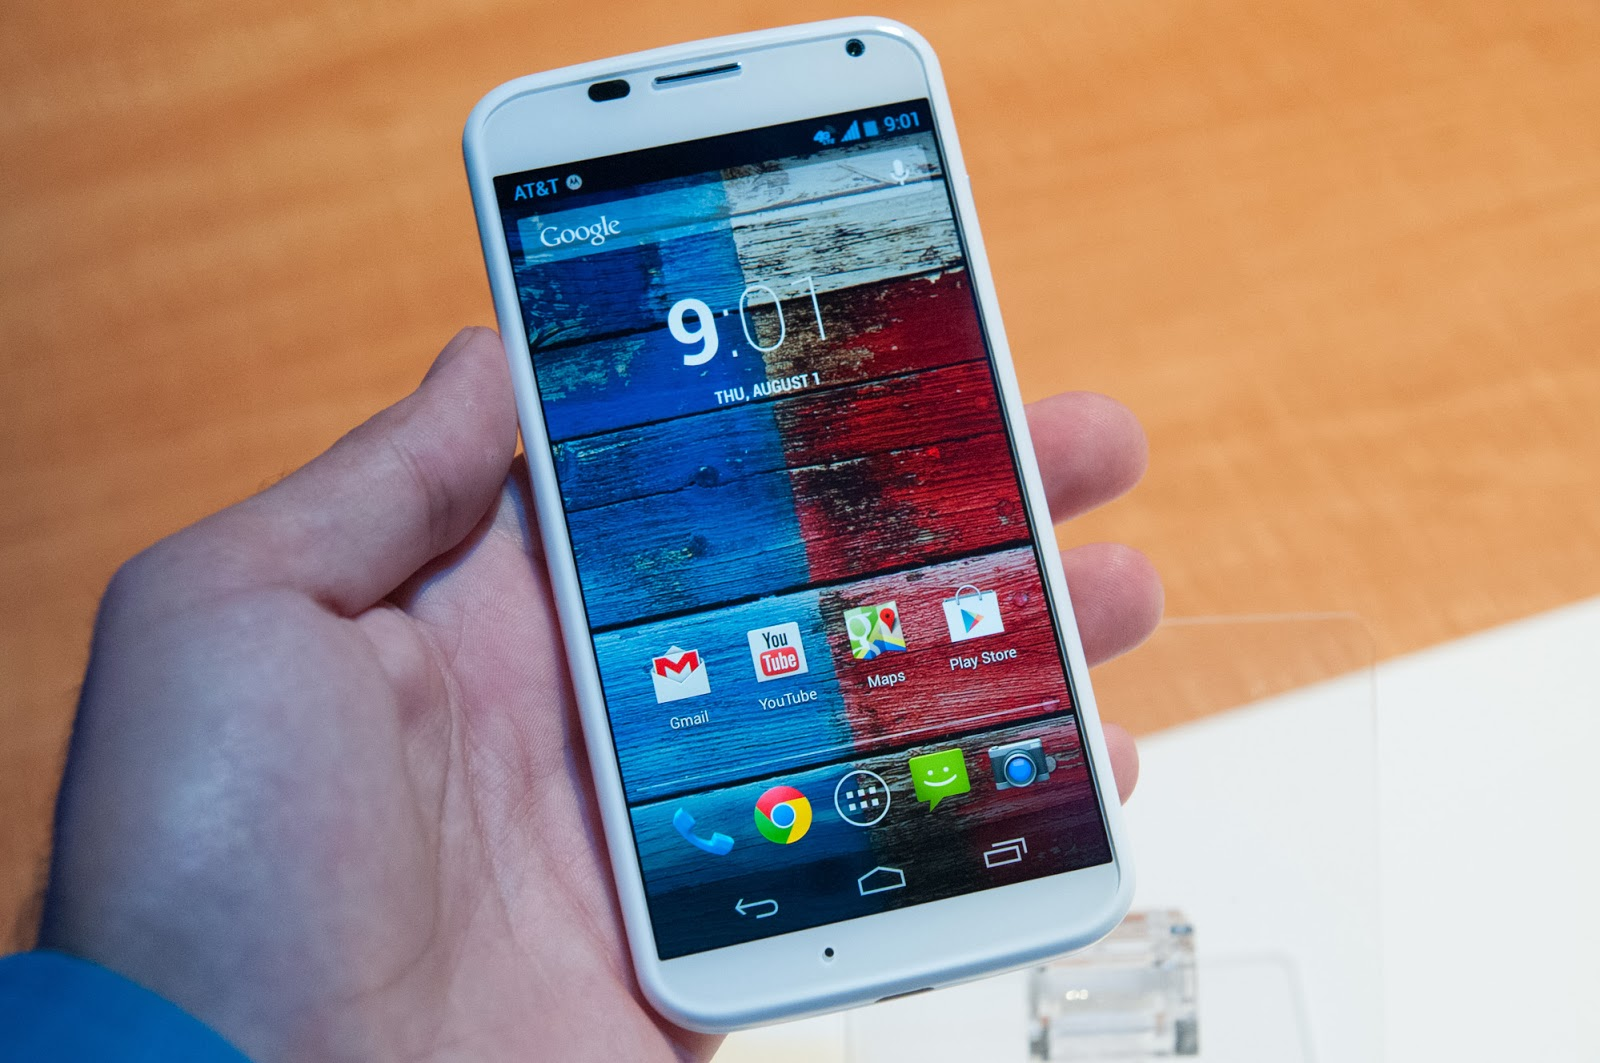 motorola moto x prices and launch date leaked for india